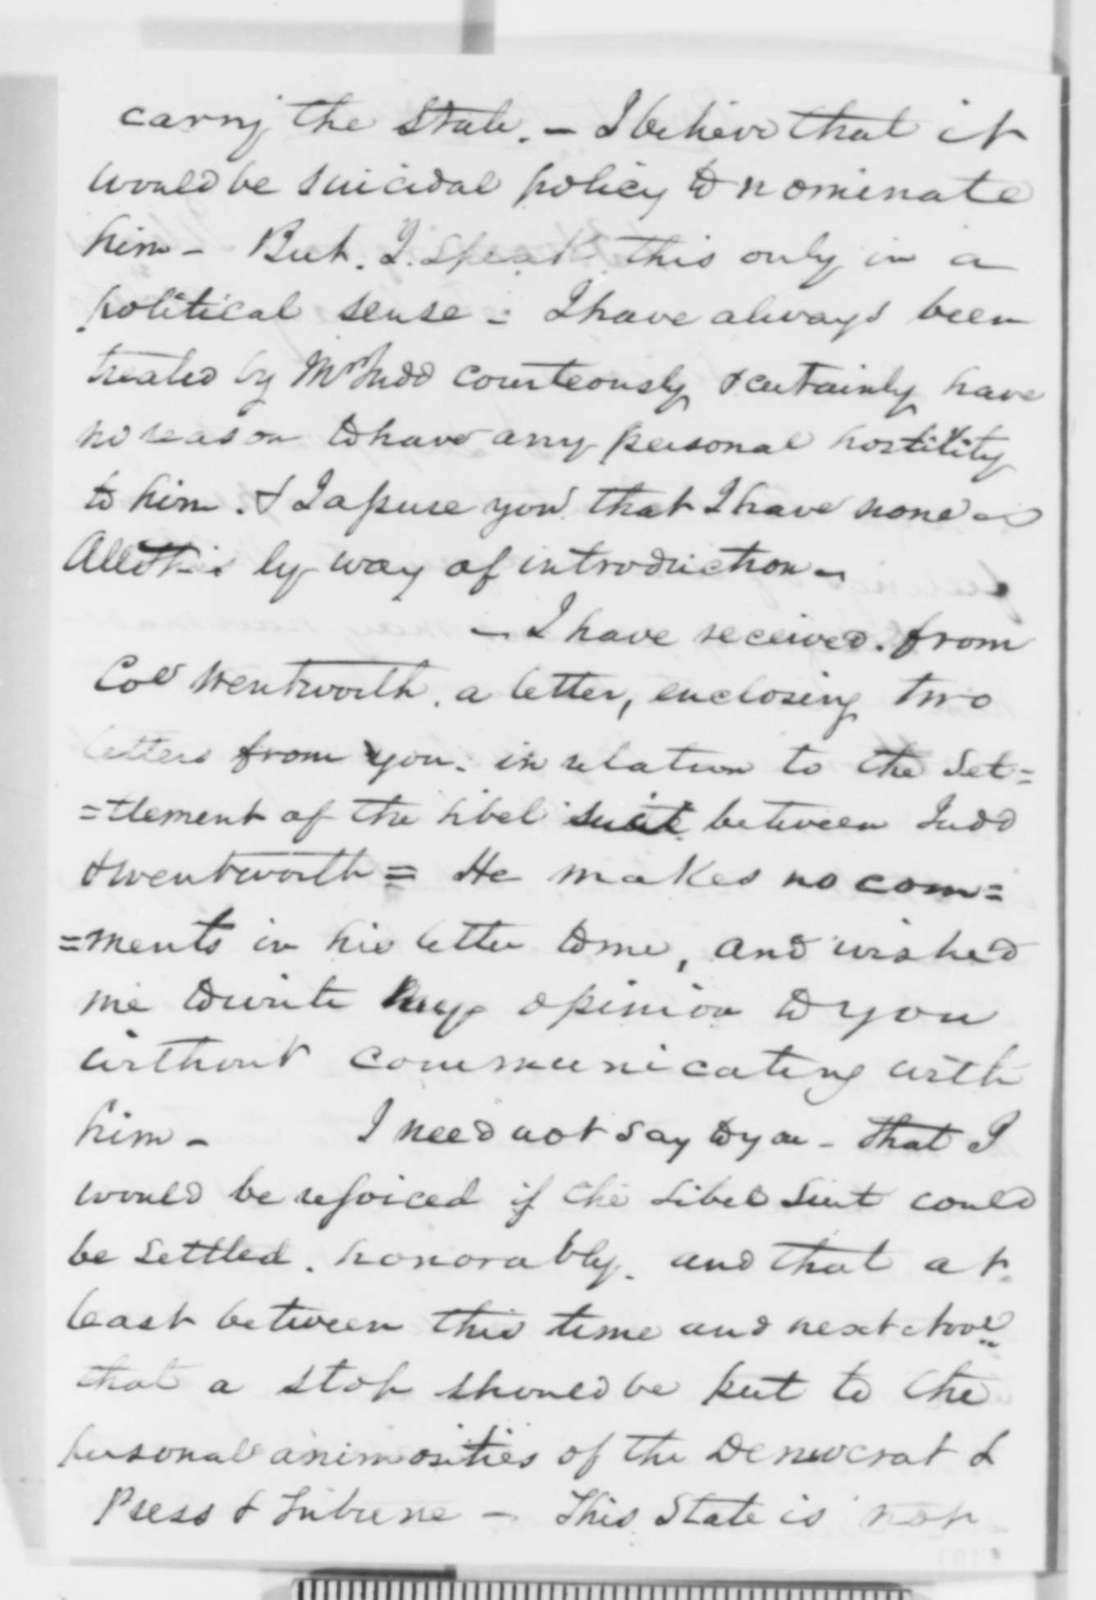 David Davis to Abraham Lincoln, Tuesday, February 21, 1860  (Judd's gubernatorial nomination; Wentworth's suit; with copy)